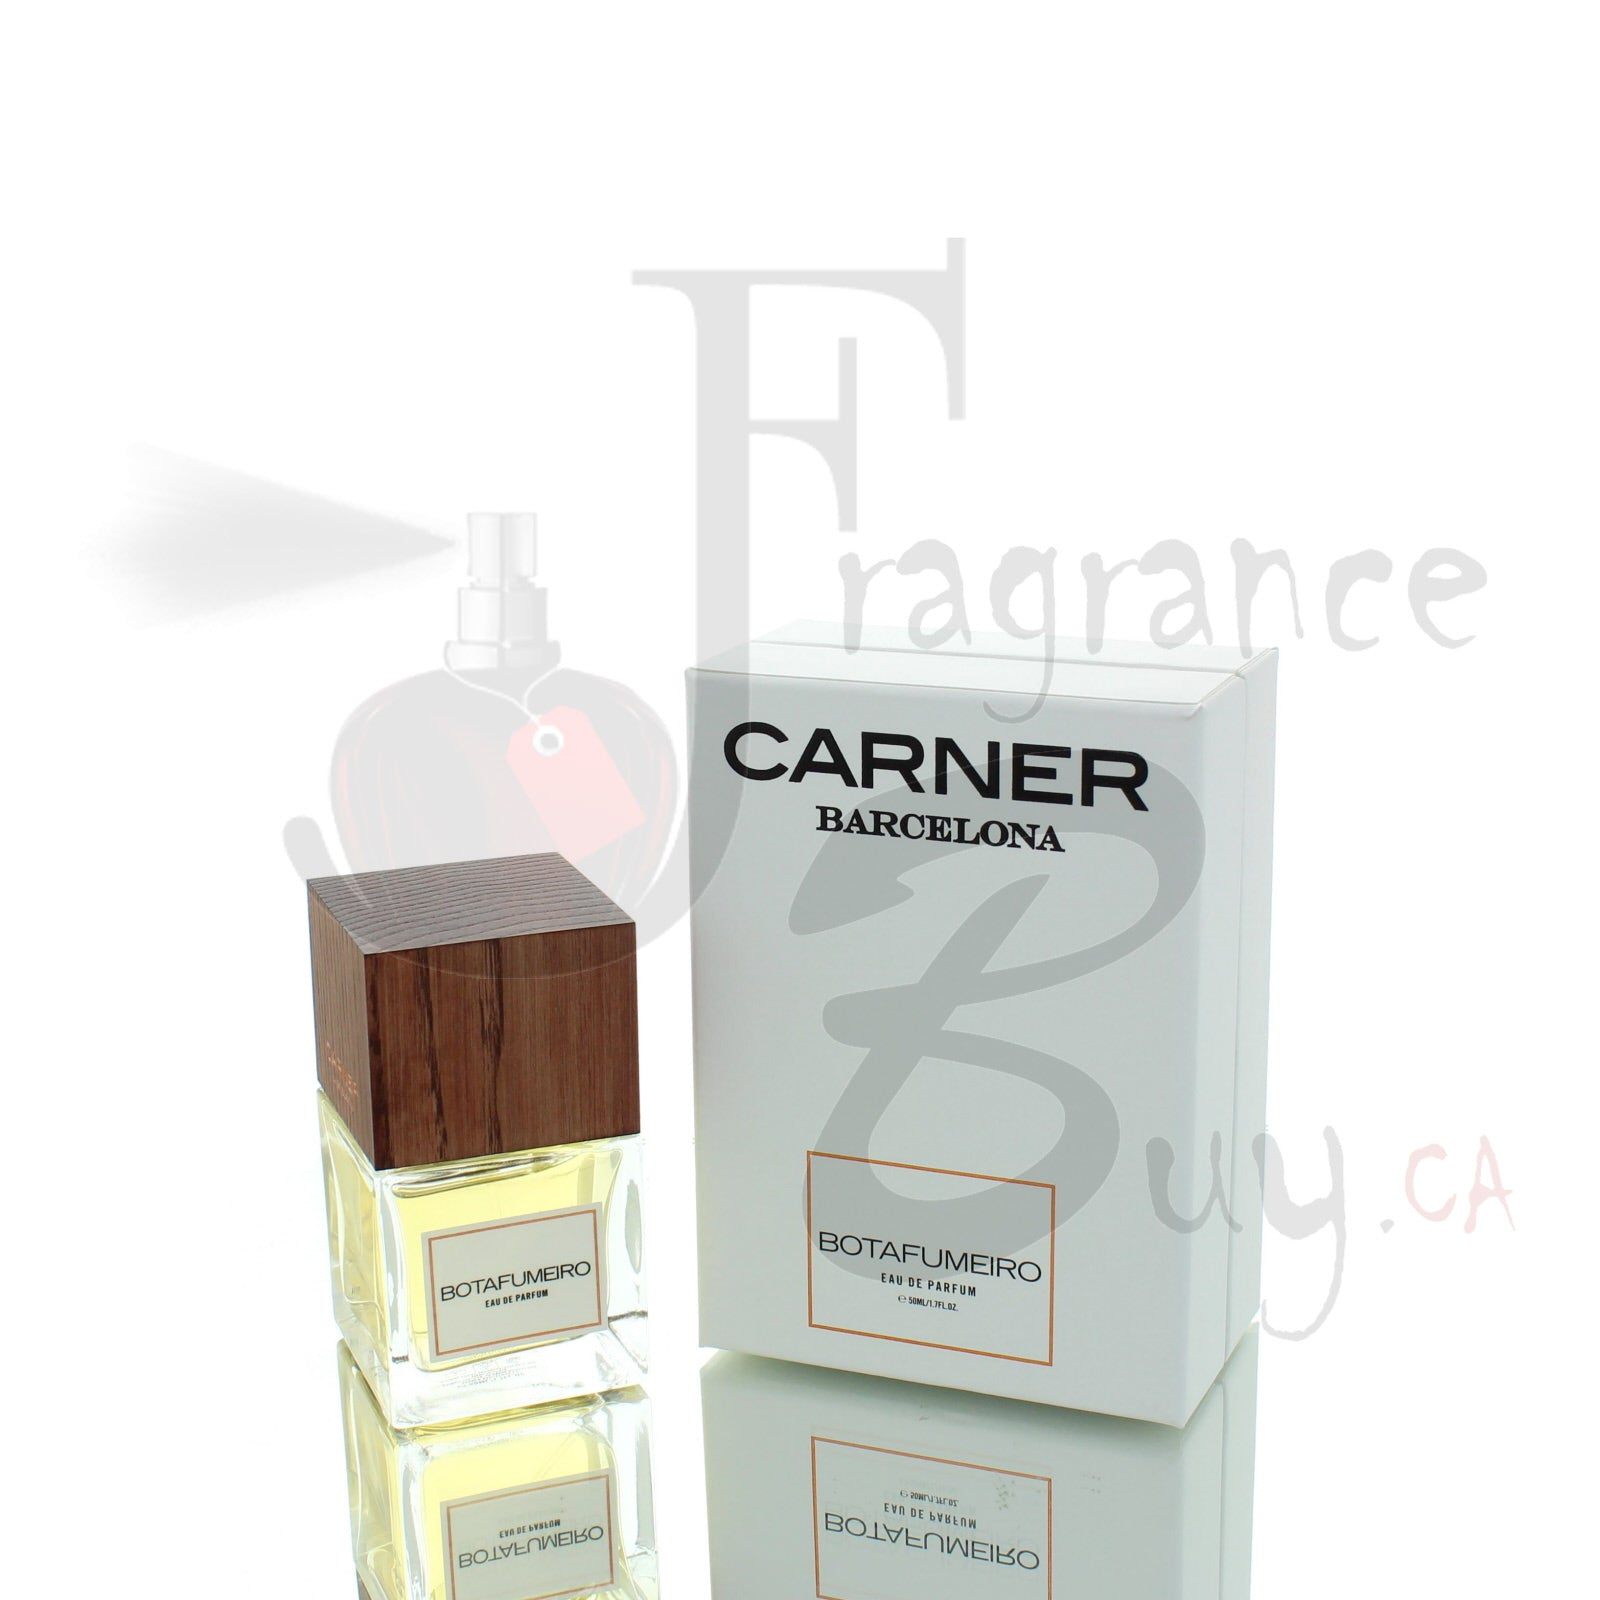 Carner Barcelona Botafumeiro For Man/Woman